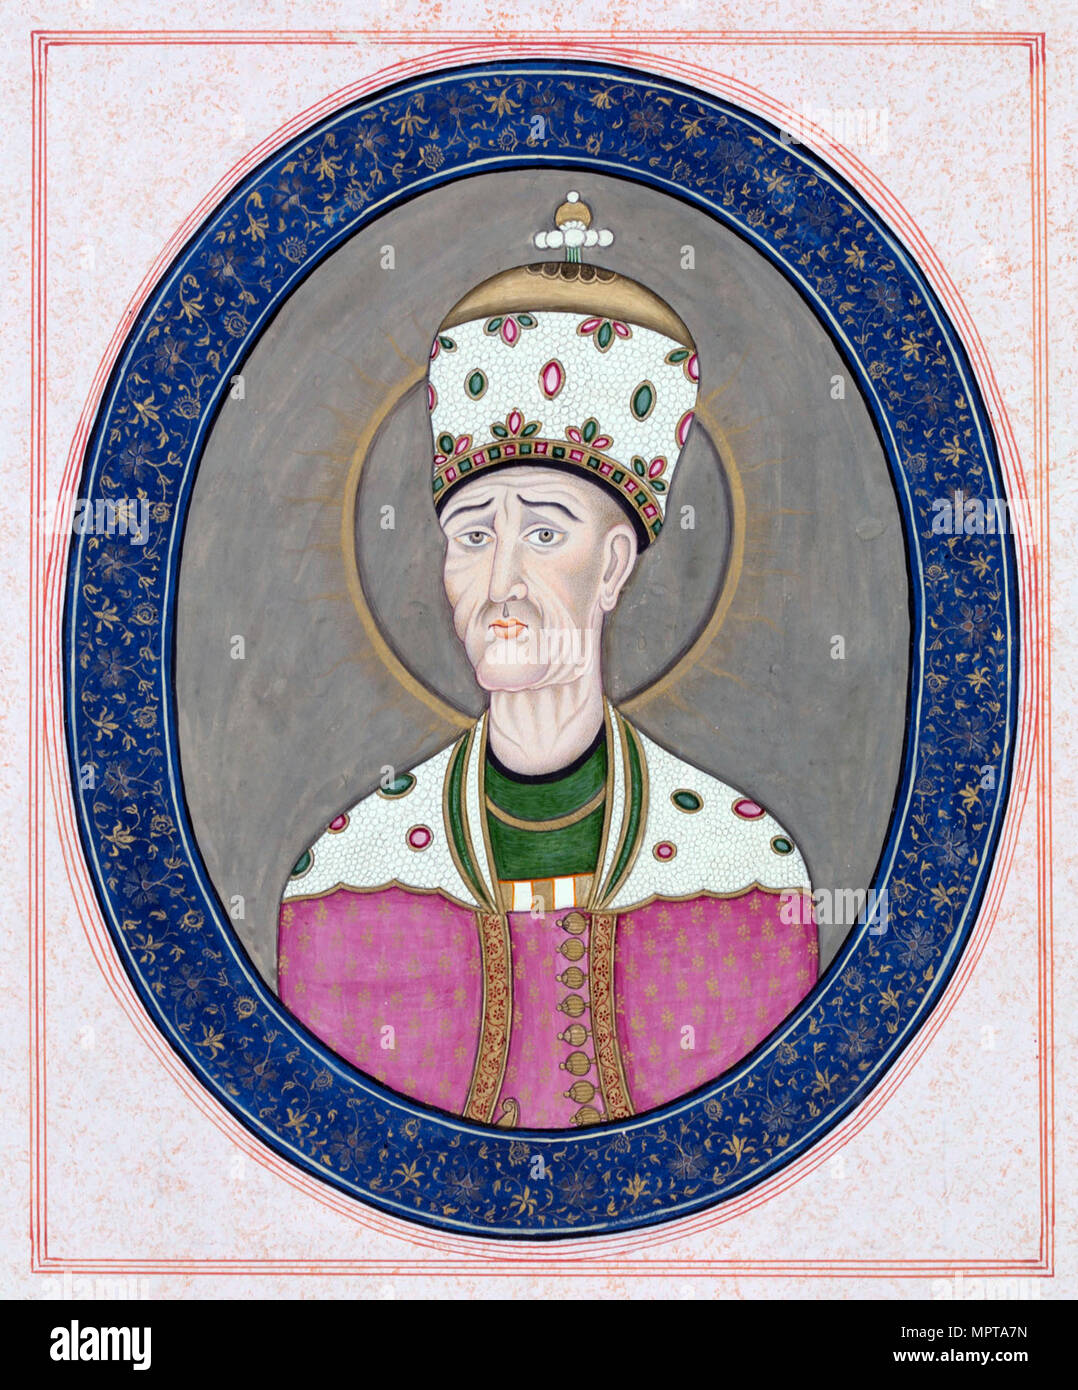 Portrait of Agha Mohammad Khan Qajar (1742-1797), Shah of Persia, c. 1840. - Stock Image